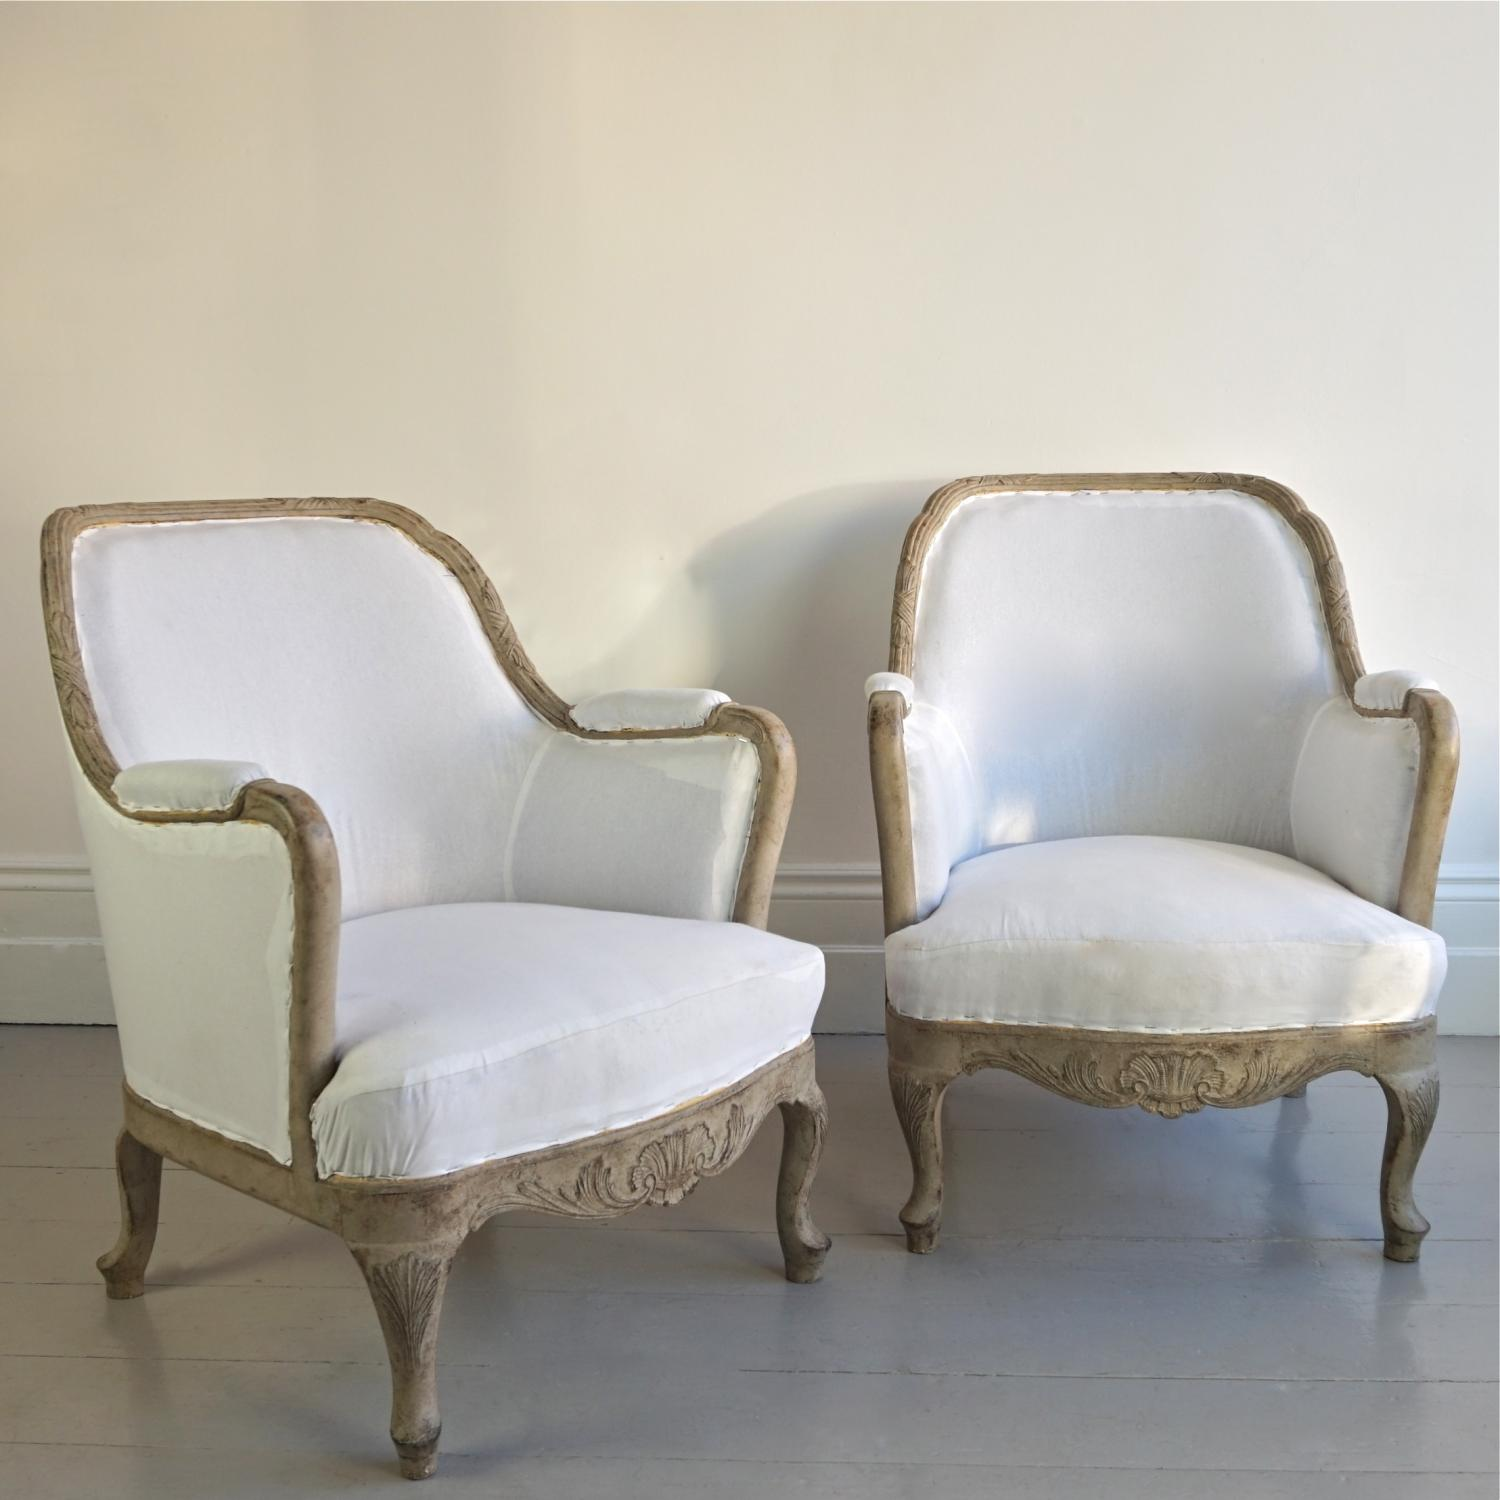 SUPERB PAIR OF SWEDISH ROCOCO BERGERE